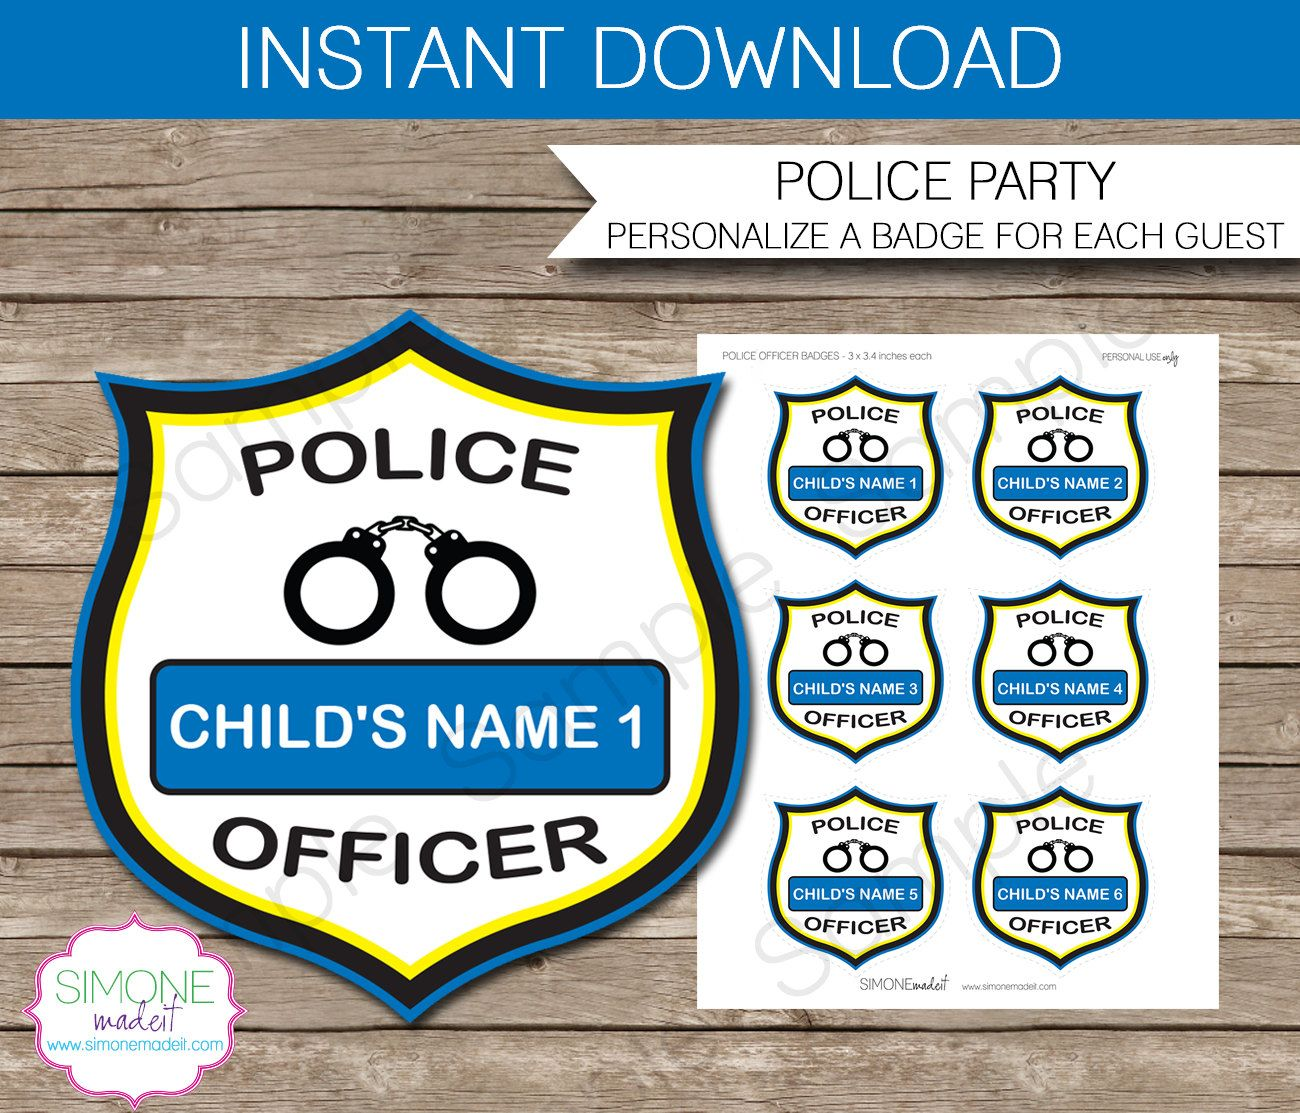 Police Officer Badges - Police Birthday Party - INSTANT DOWNLOAD and EDITABLE template - type your own text in Adobe Reader by SIMONEmadeit on Etsy